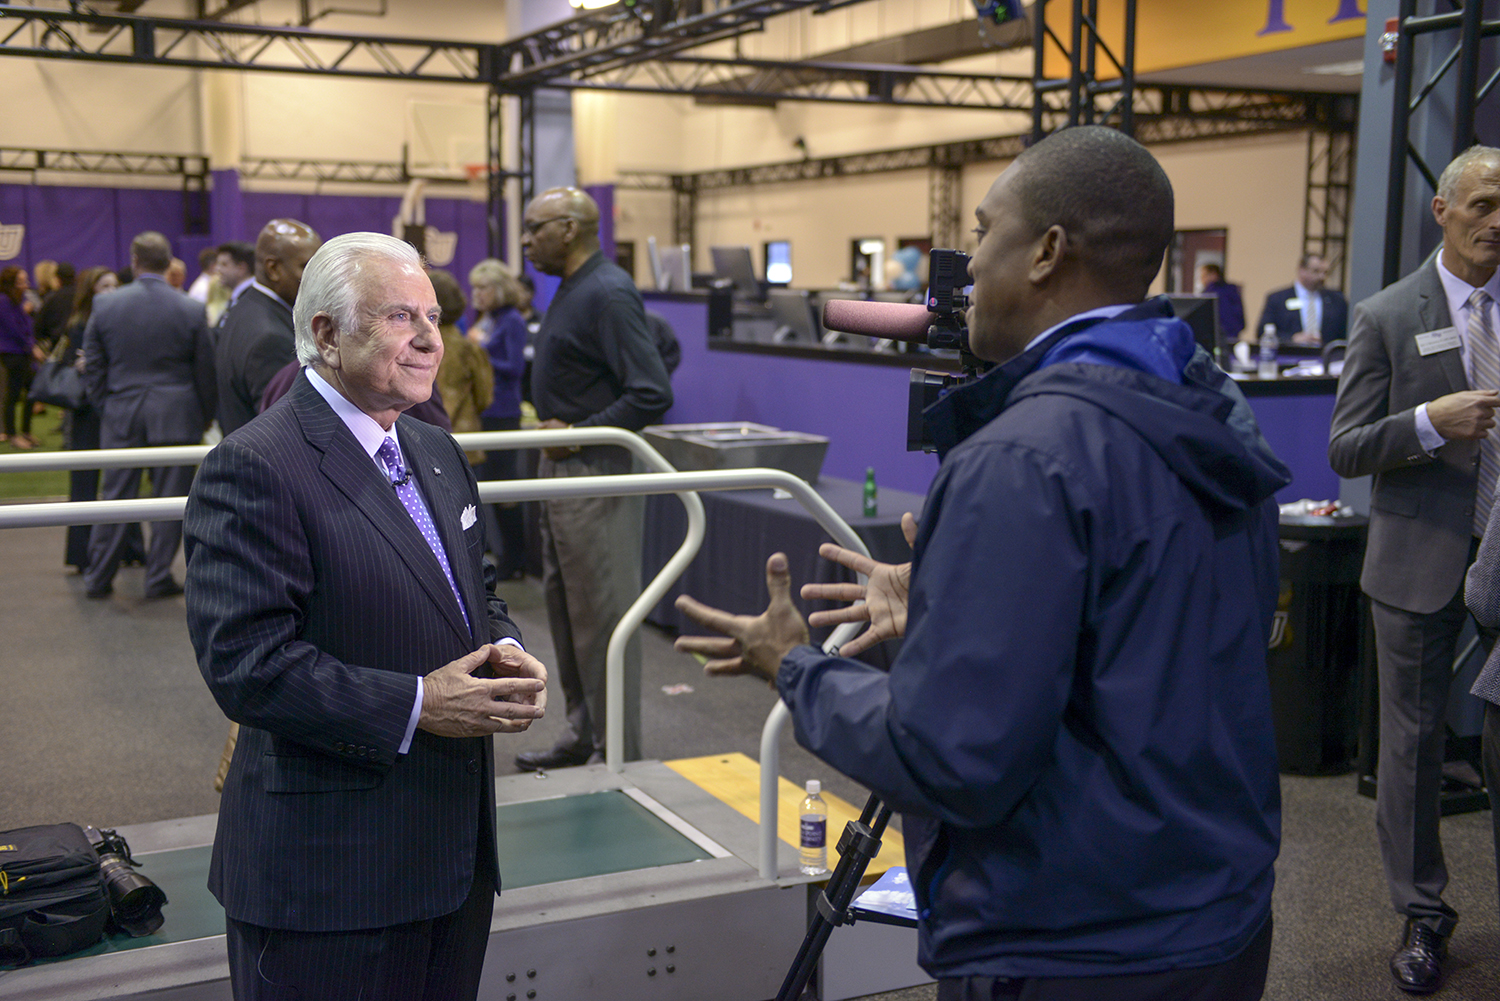 WFMY reporter Patrick Wright interviewed HPU president Dr. Nido Qubein during the partnership announcement with High Point Regional Health that will allow future HPU physical therapy students to provide pro bono services to the community.